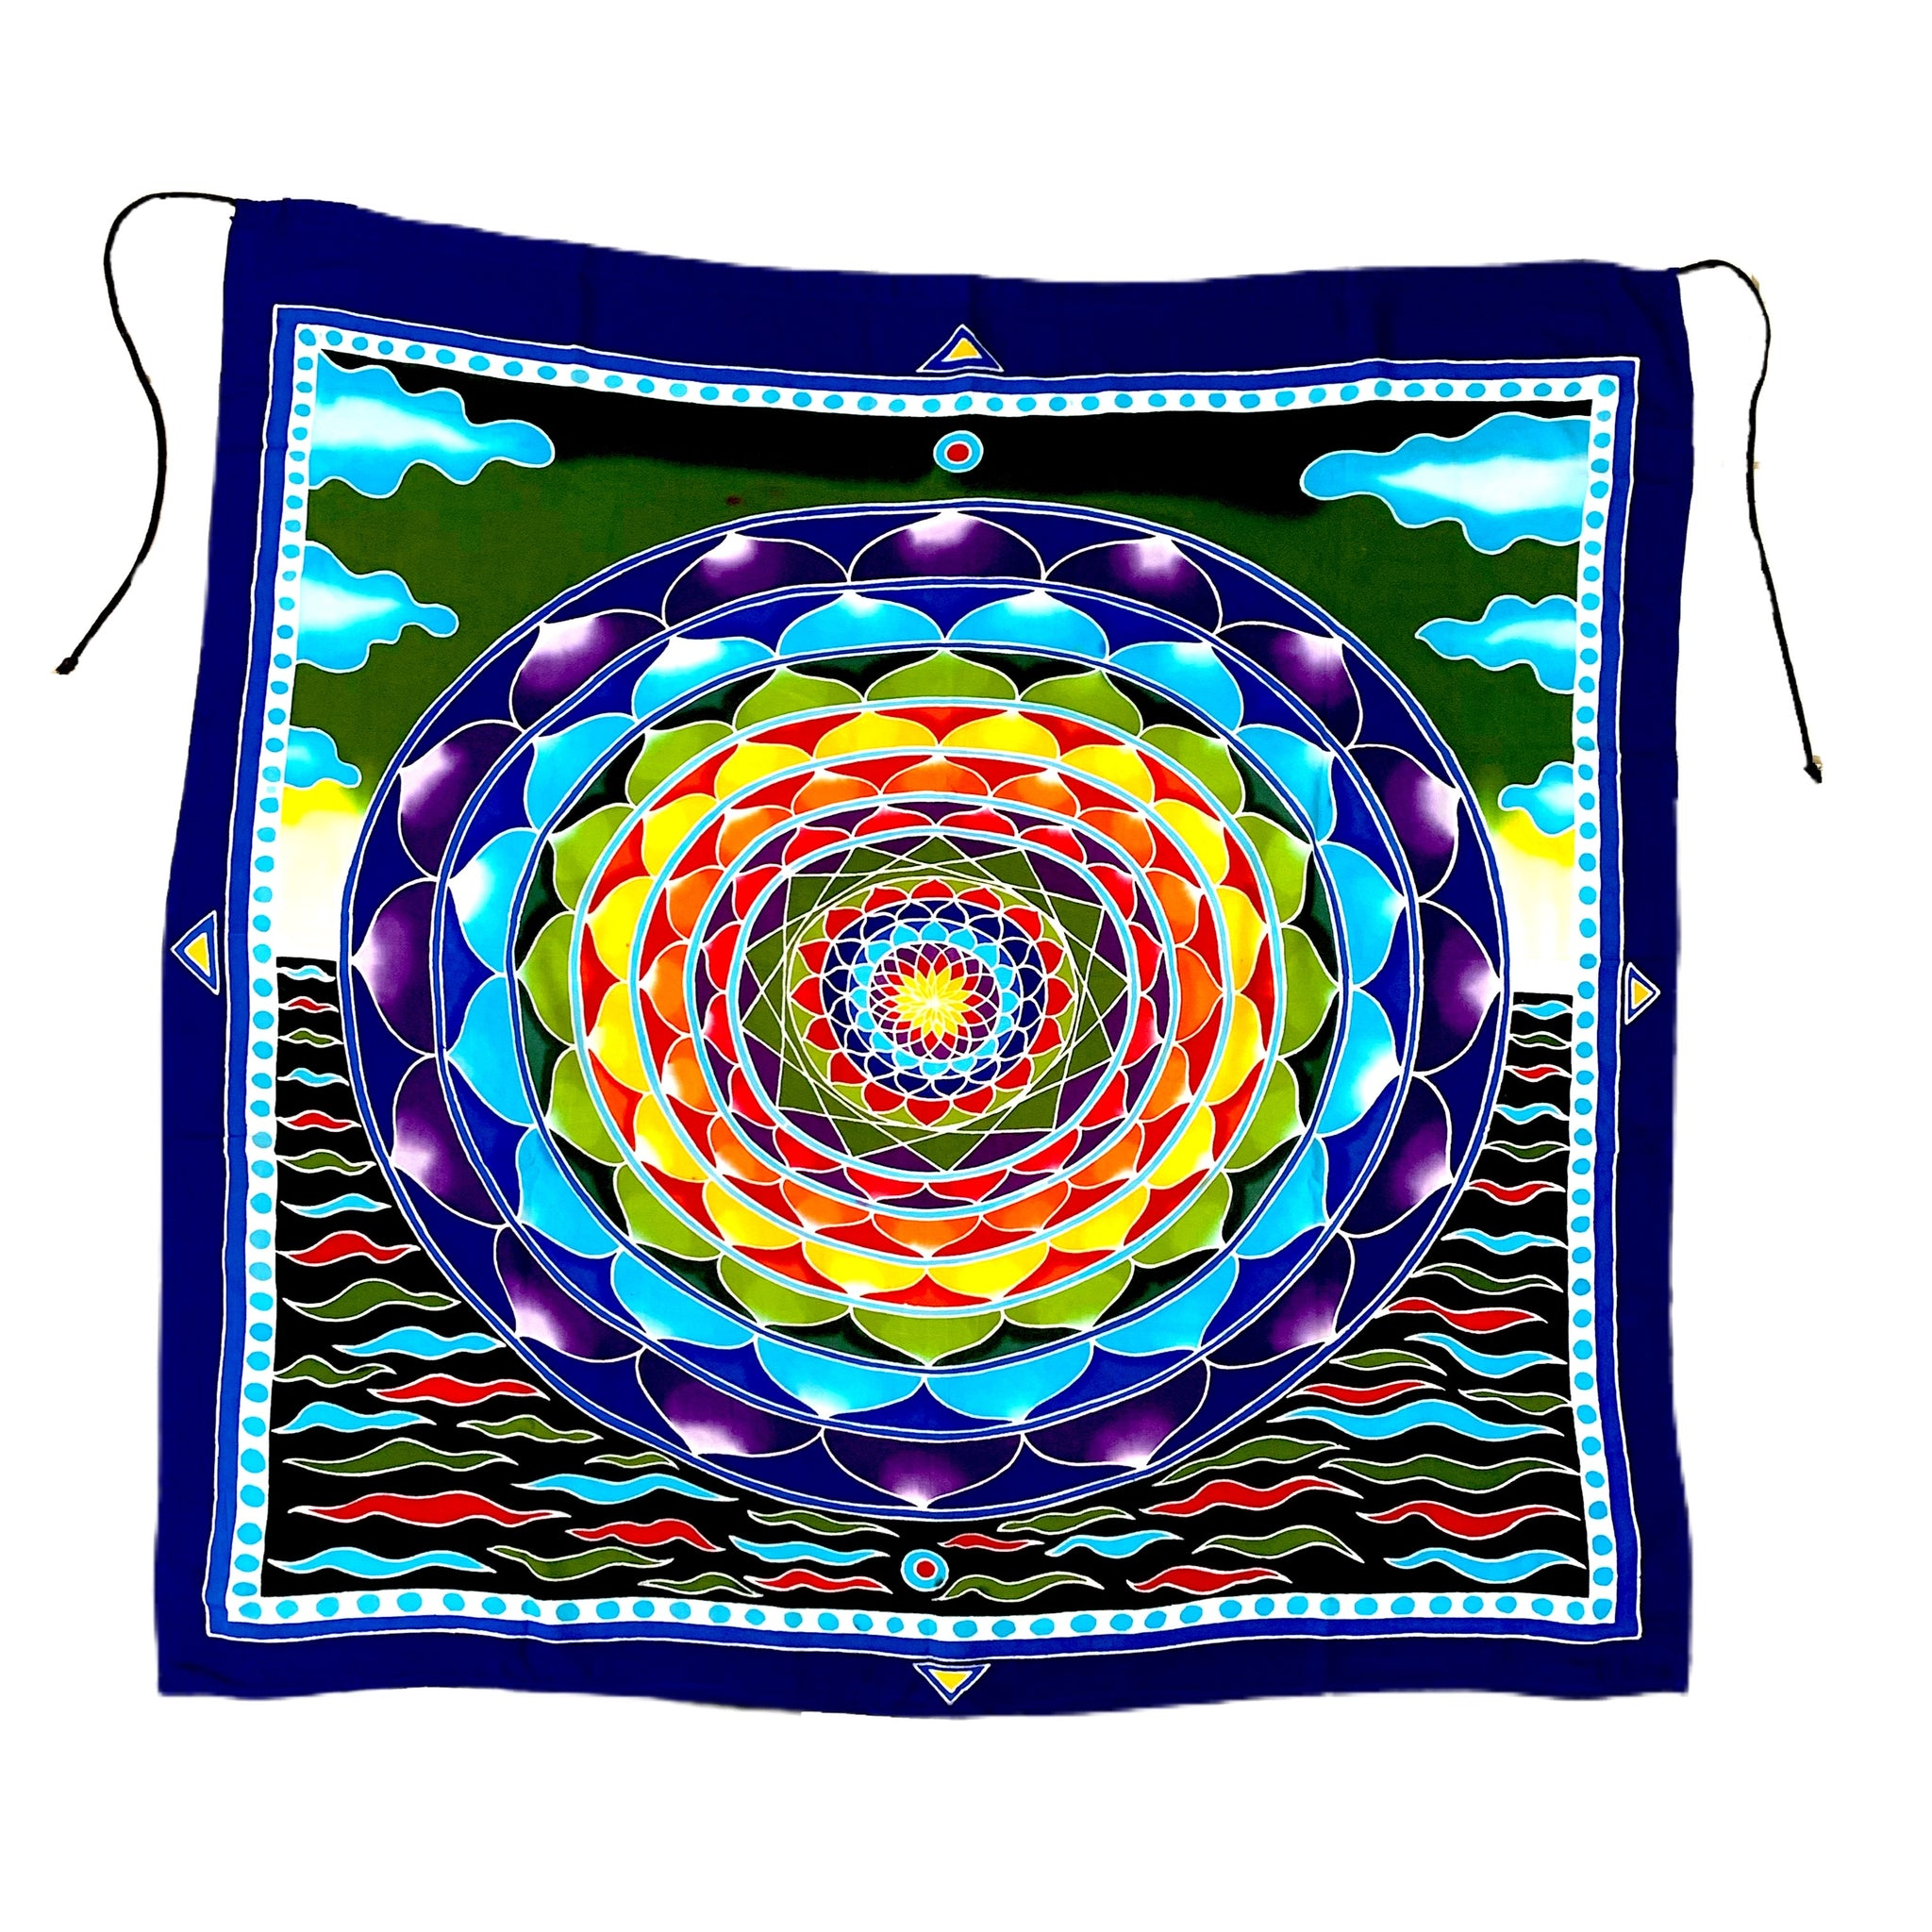 Blue & Green Flower of Life Batik Tapestry With Waves and Sky Background - 3 feet